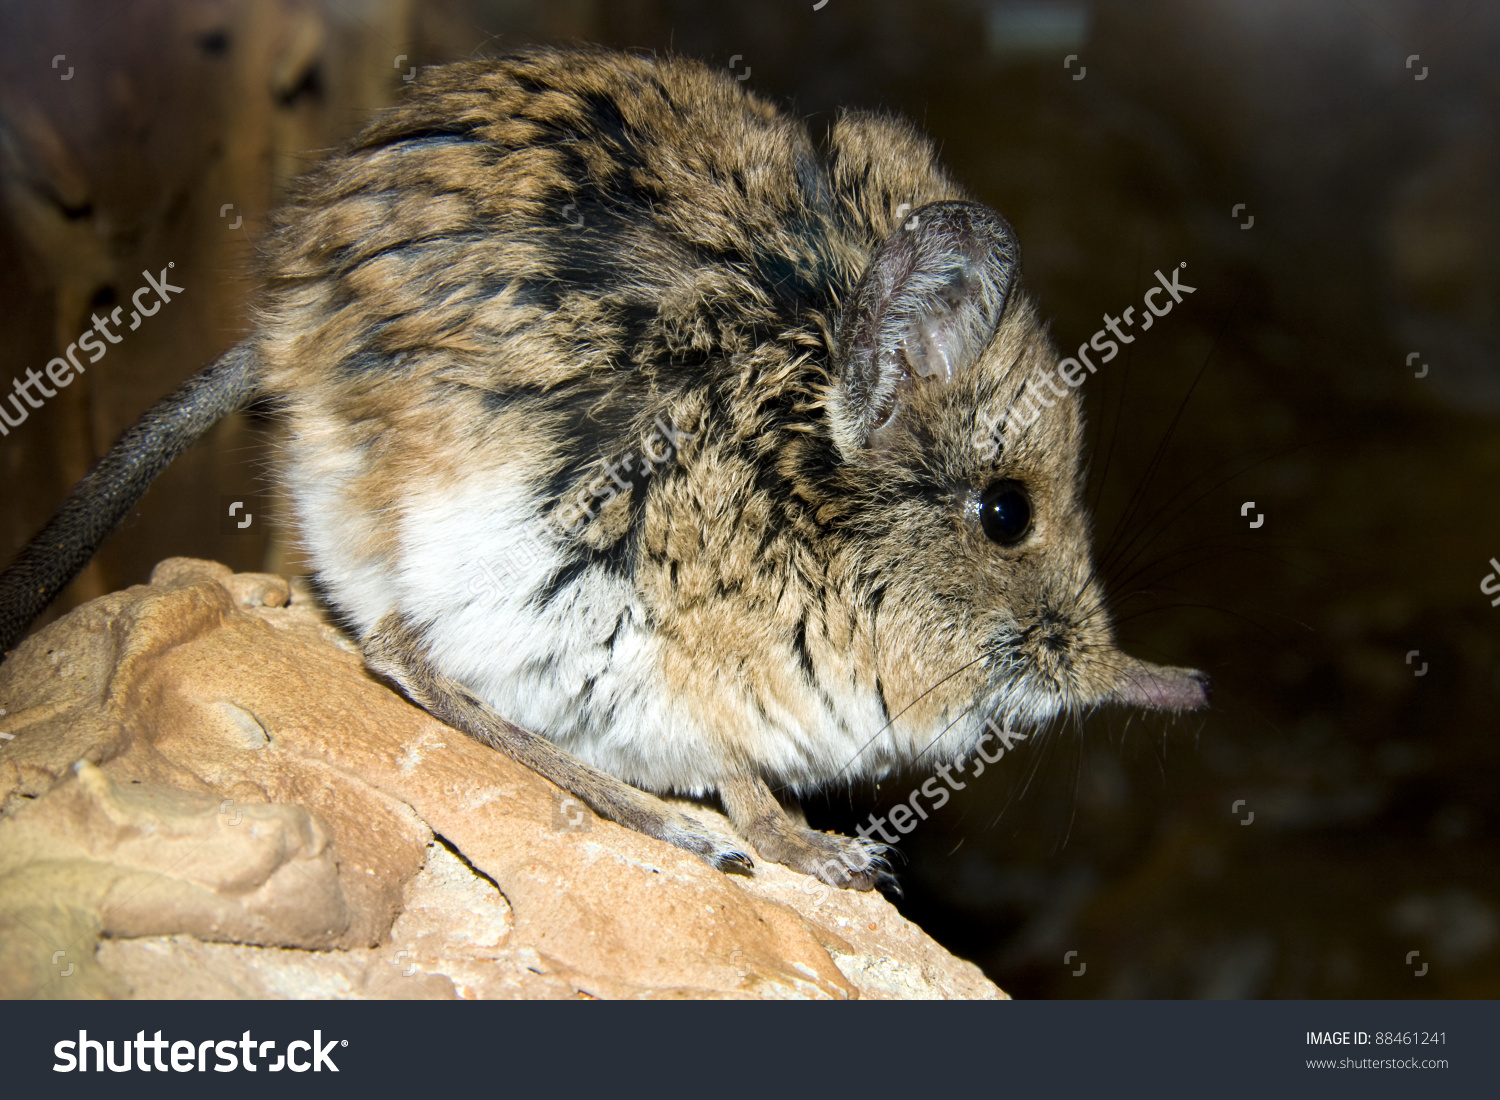 Shorteared Elephant Shrew Macroscelides Proboscideus Stock Photo.